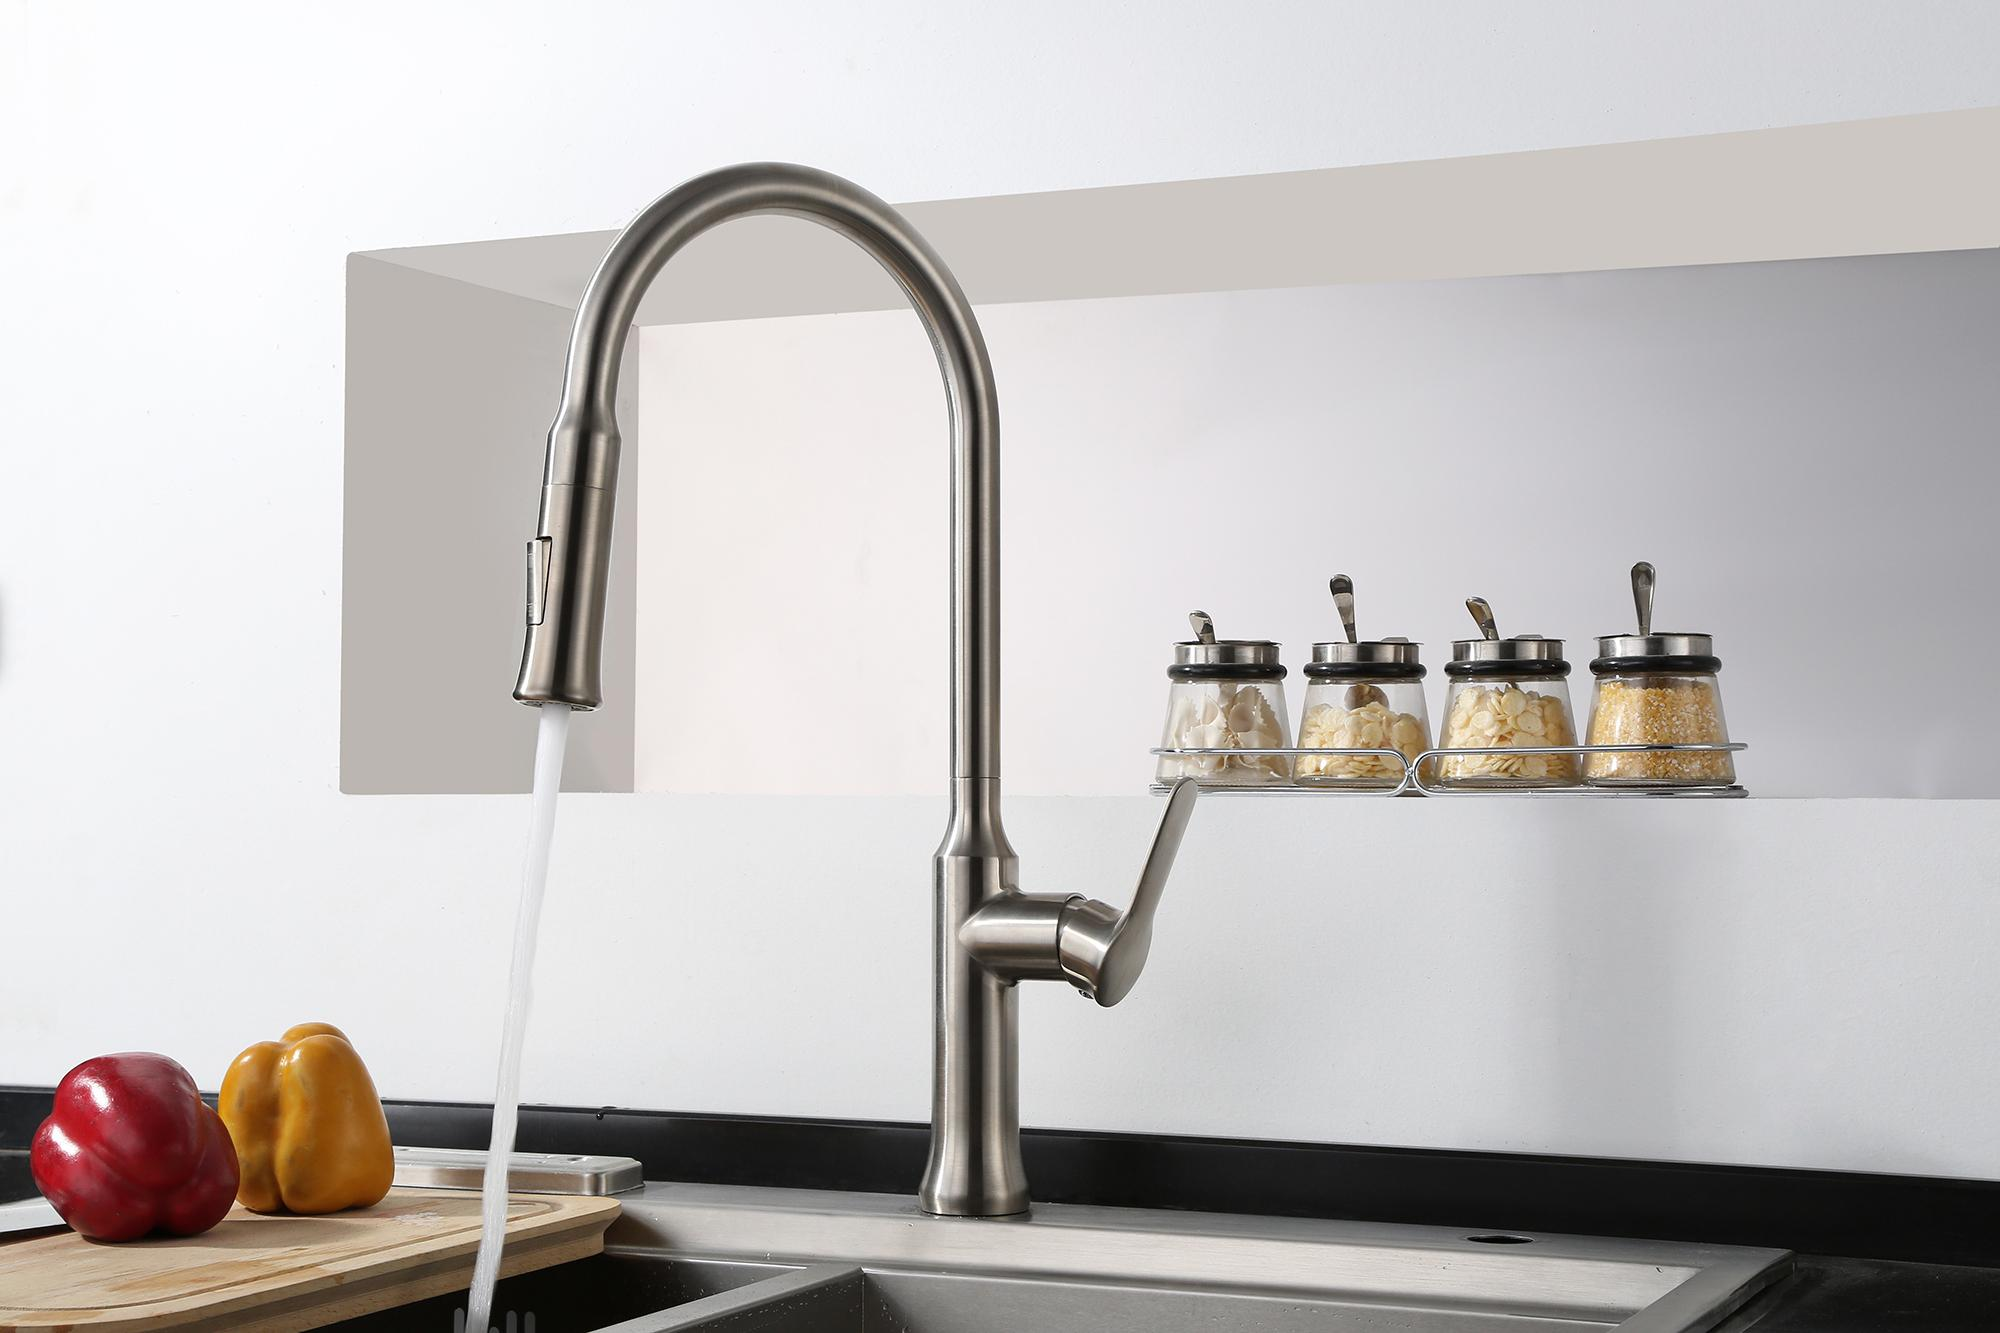 New Style Pull Out Kitchen Faucet Modern Shower And Water Ways Kitchen Taps 2